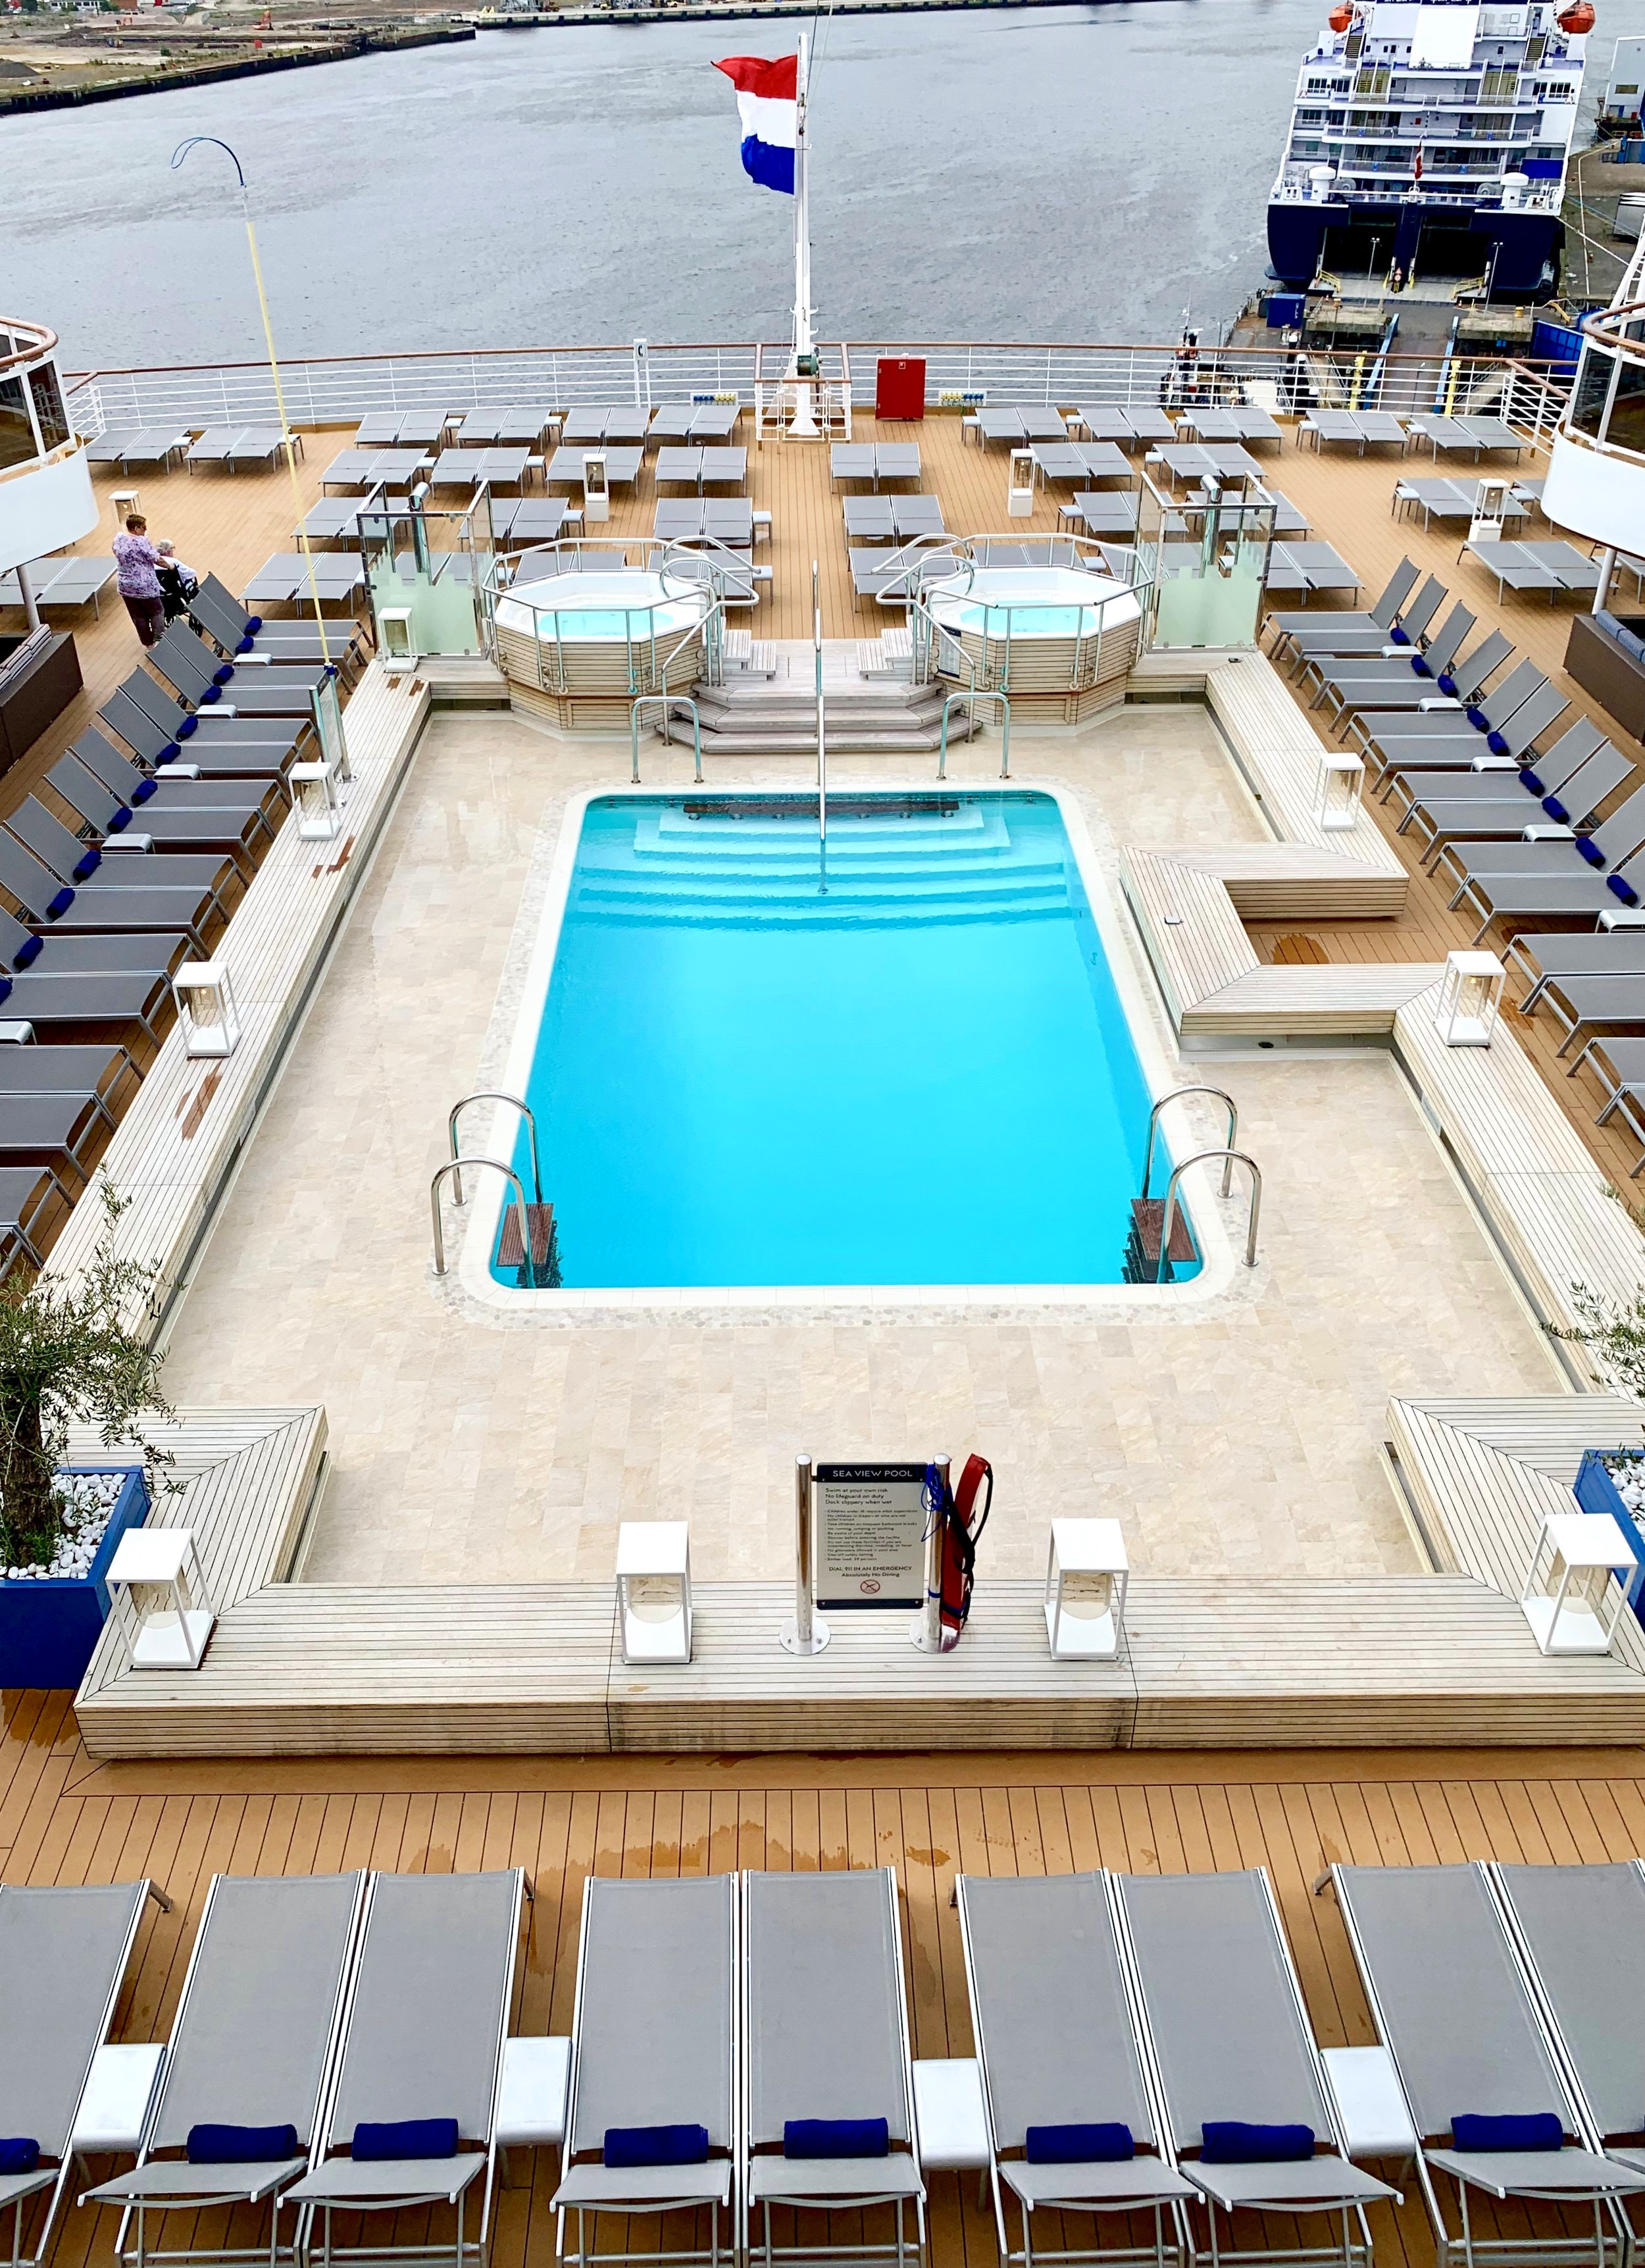 The Seaview pool and hot tubs